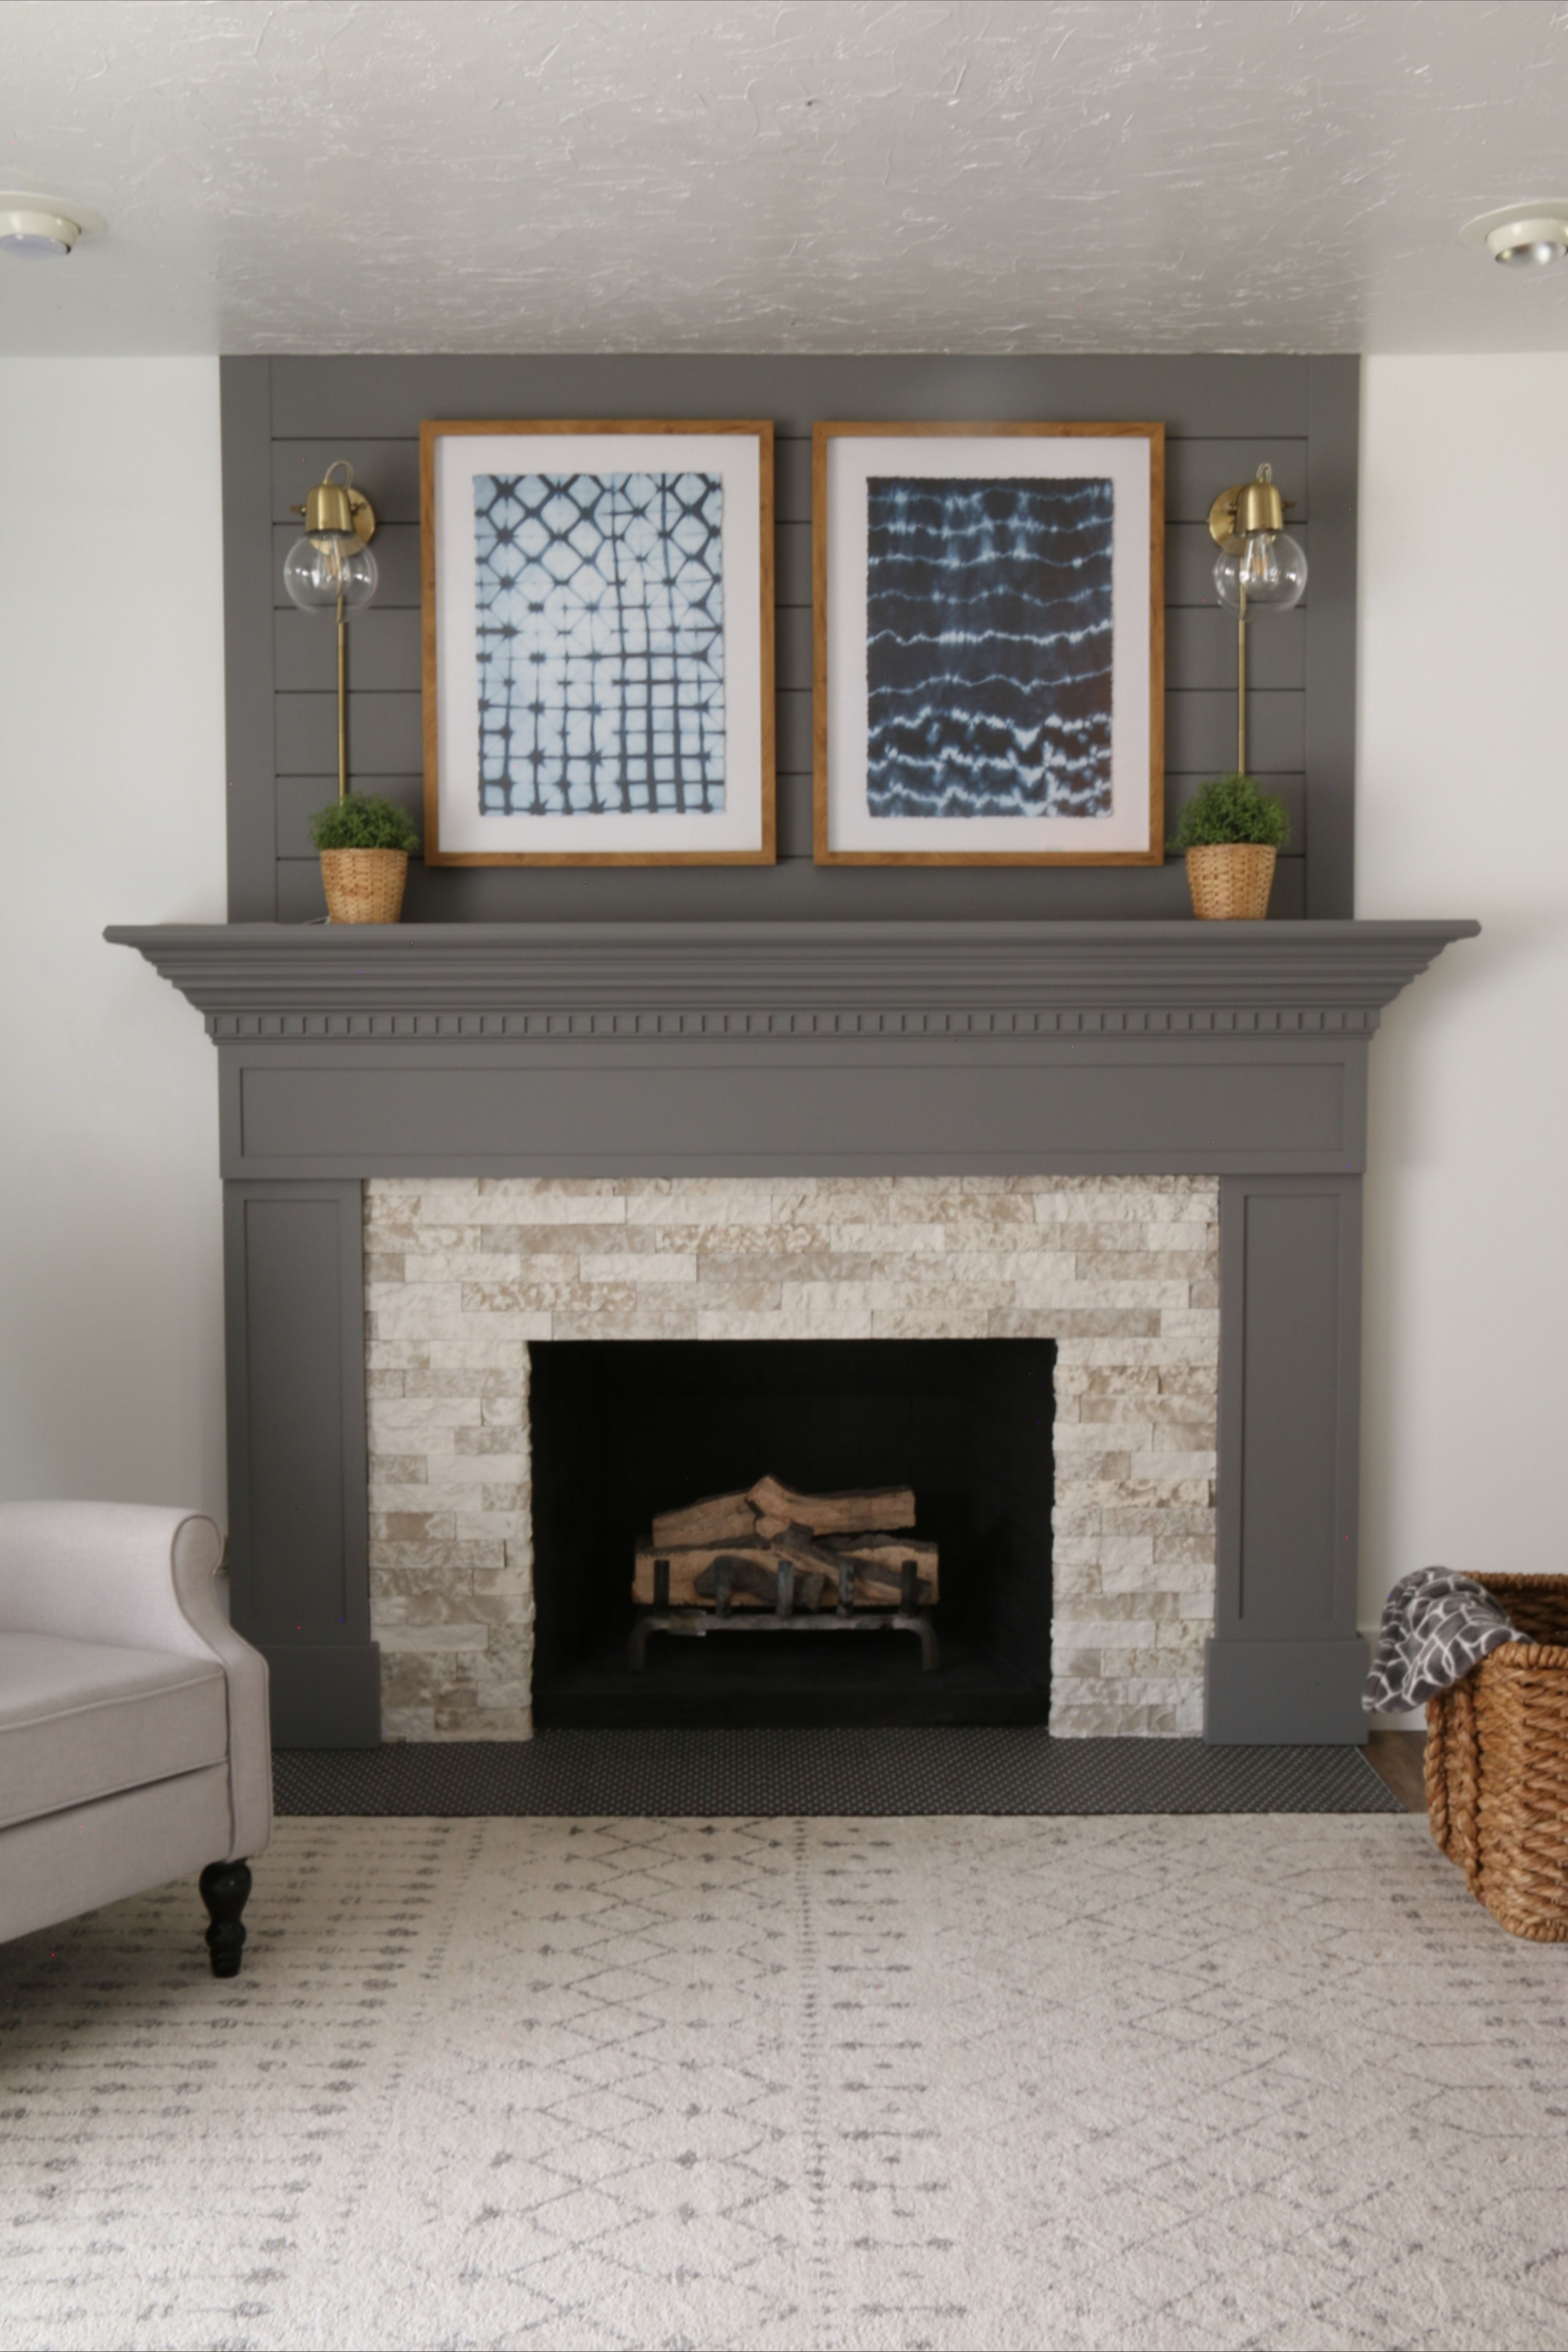 76 Stone Fireplaces The Hearth Is The Heart of The Home 41